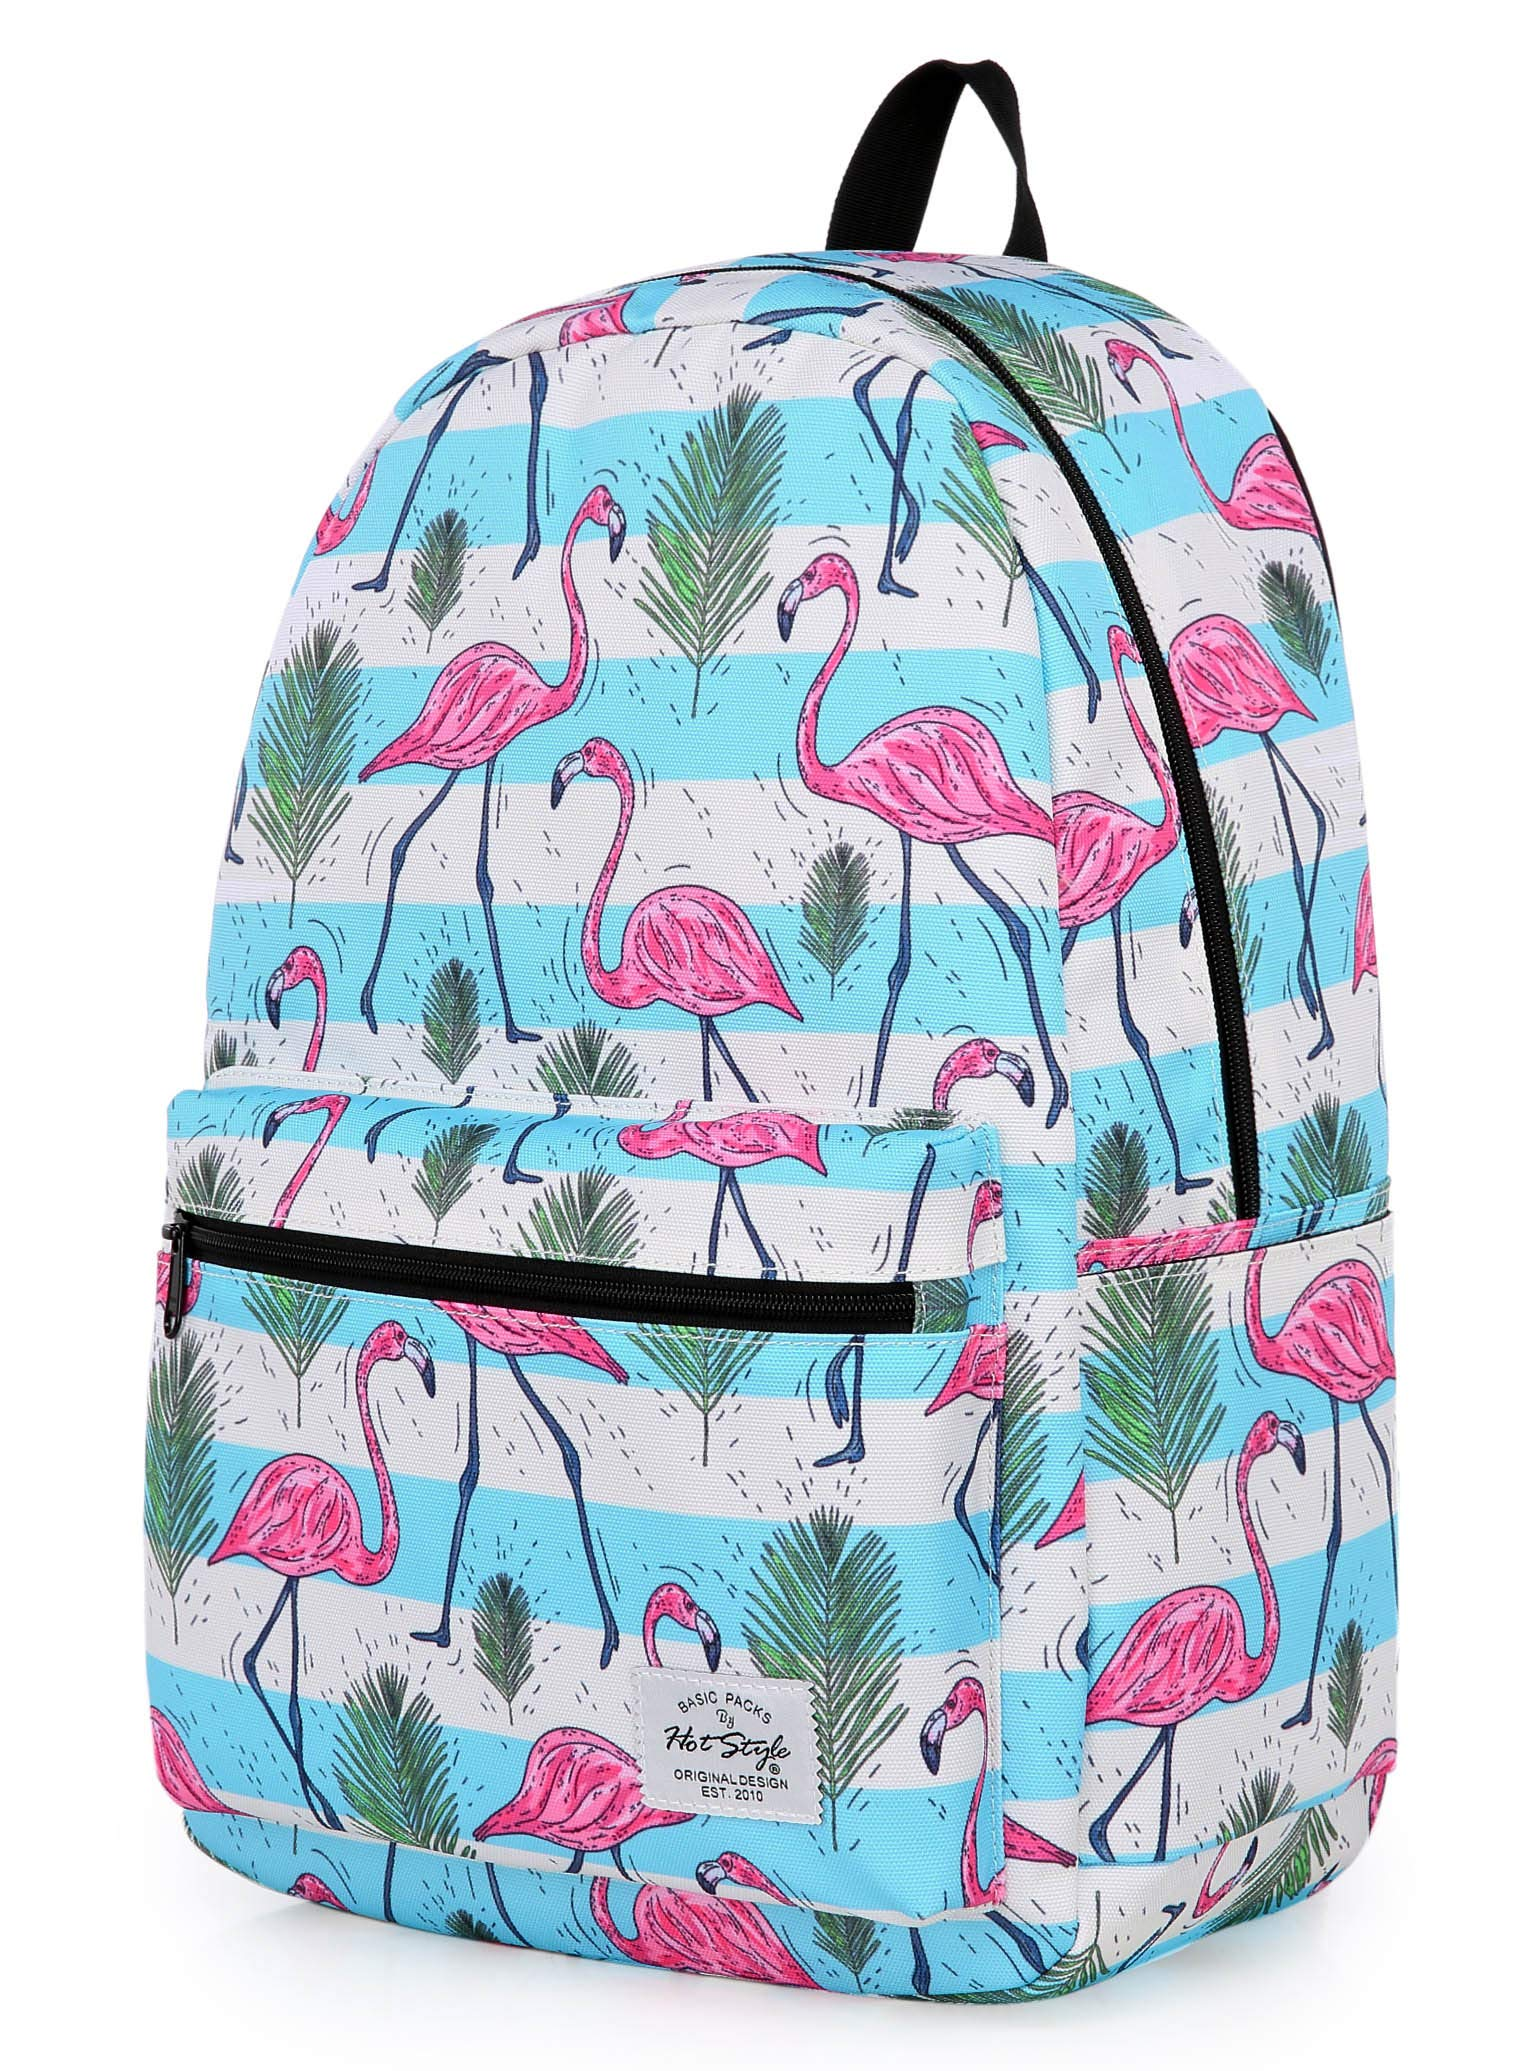 TRENDYMAX Backpack Cute for School | 16''x12''x6'' | Holds 15.4-inch Laptop | Flamingos, Stripes